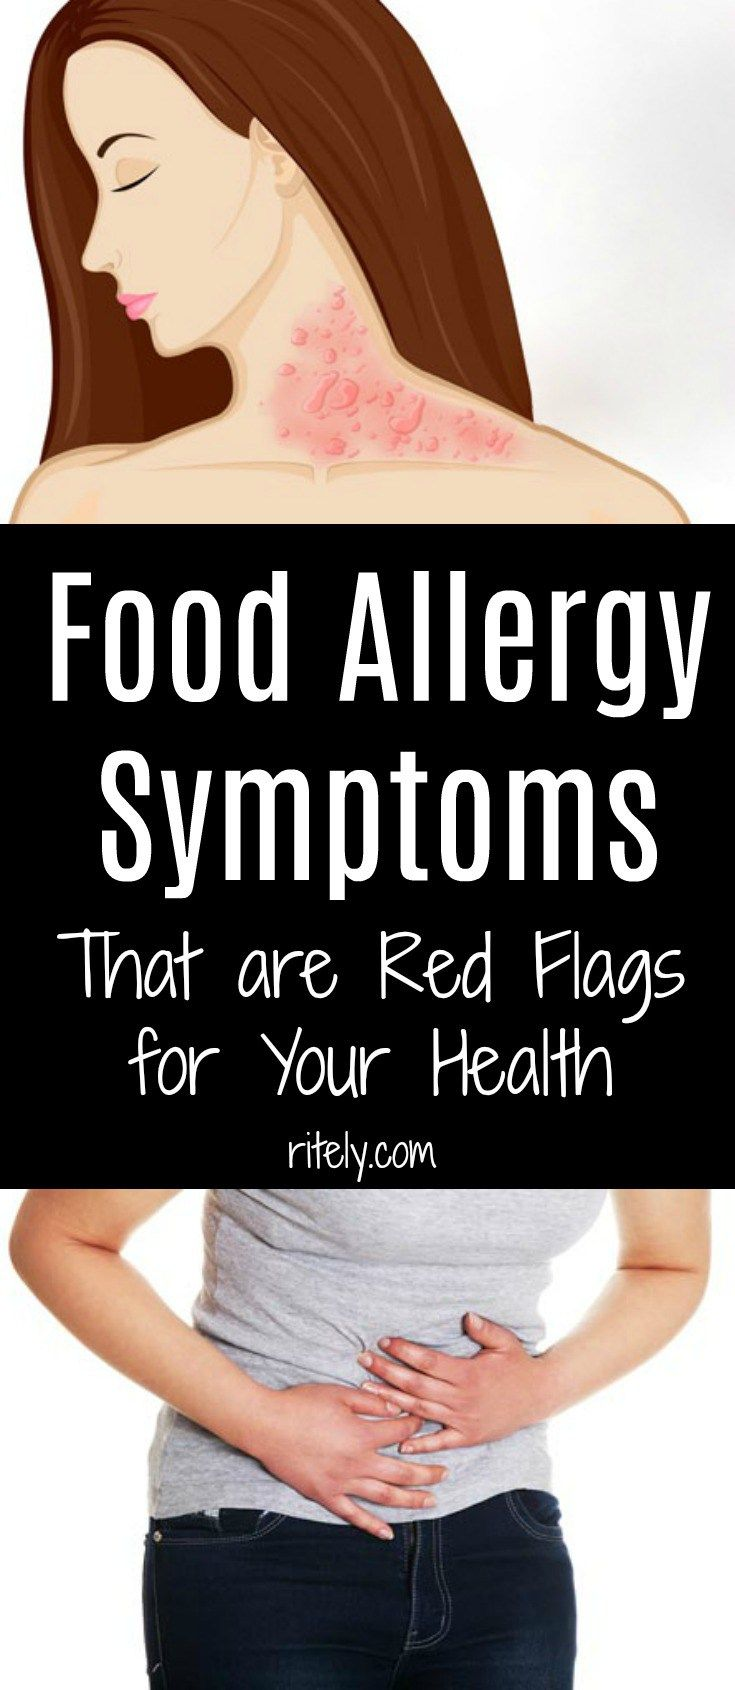 Food Allergy Symptoms That Are Red Flags For Your Health!!!!!!  #lifestyle  #fitness